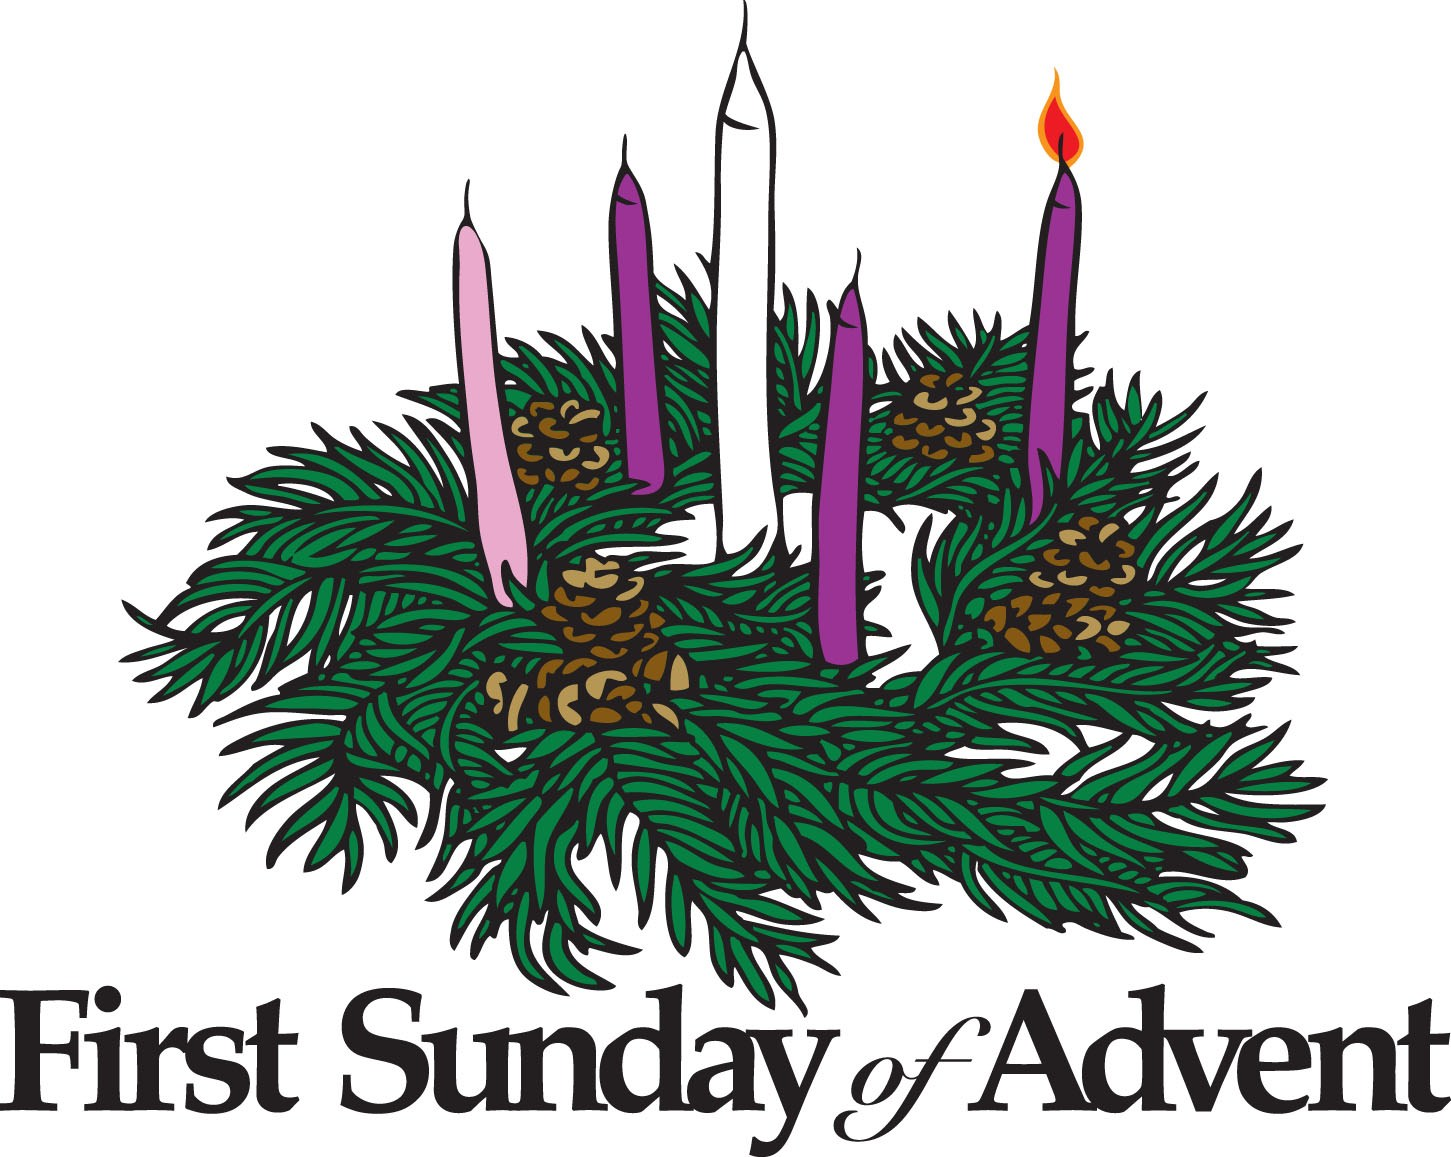 Third sunday of advent clipart 5 » Clipart Portal.